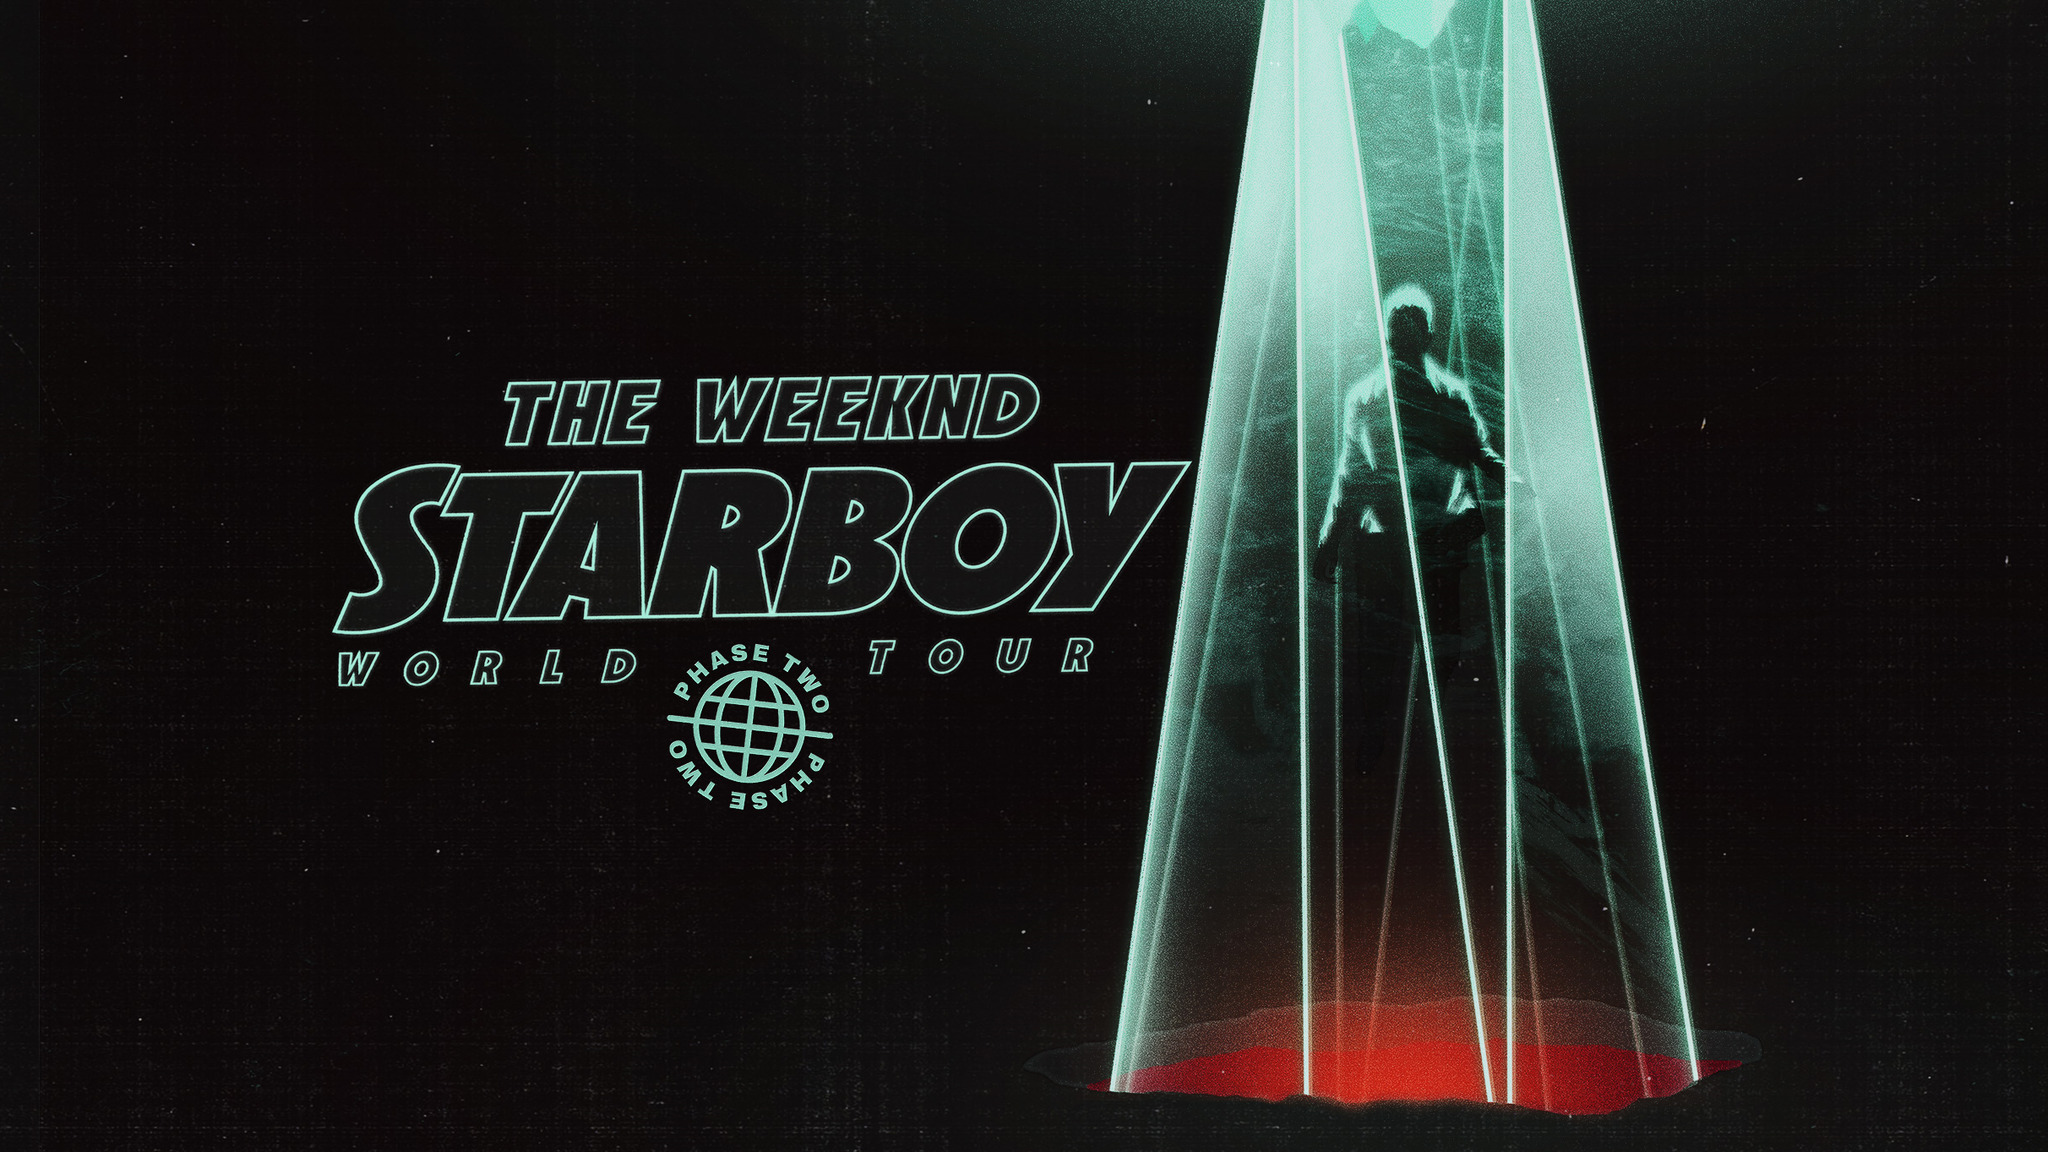 Group Of The Weeknd Wallpaper 2048x1152